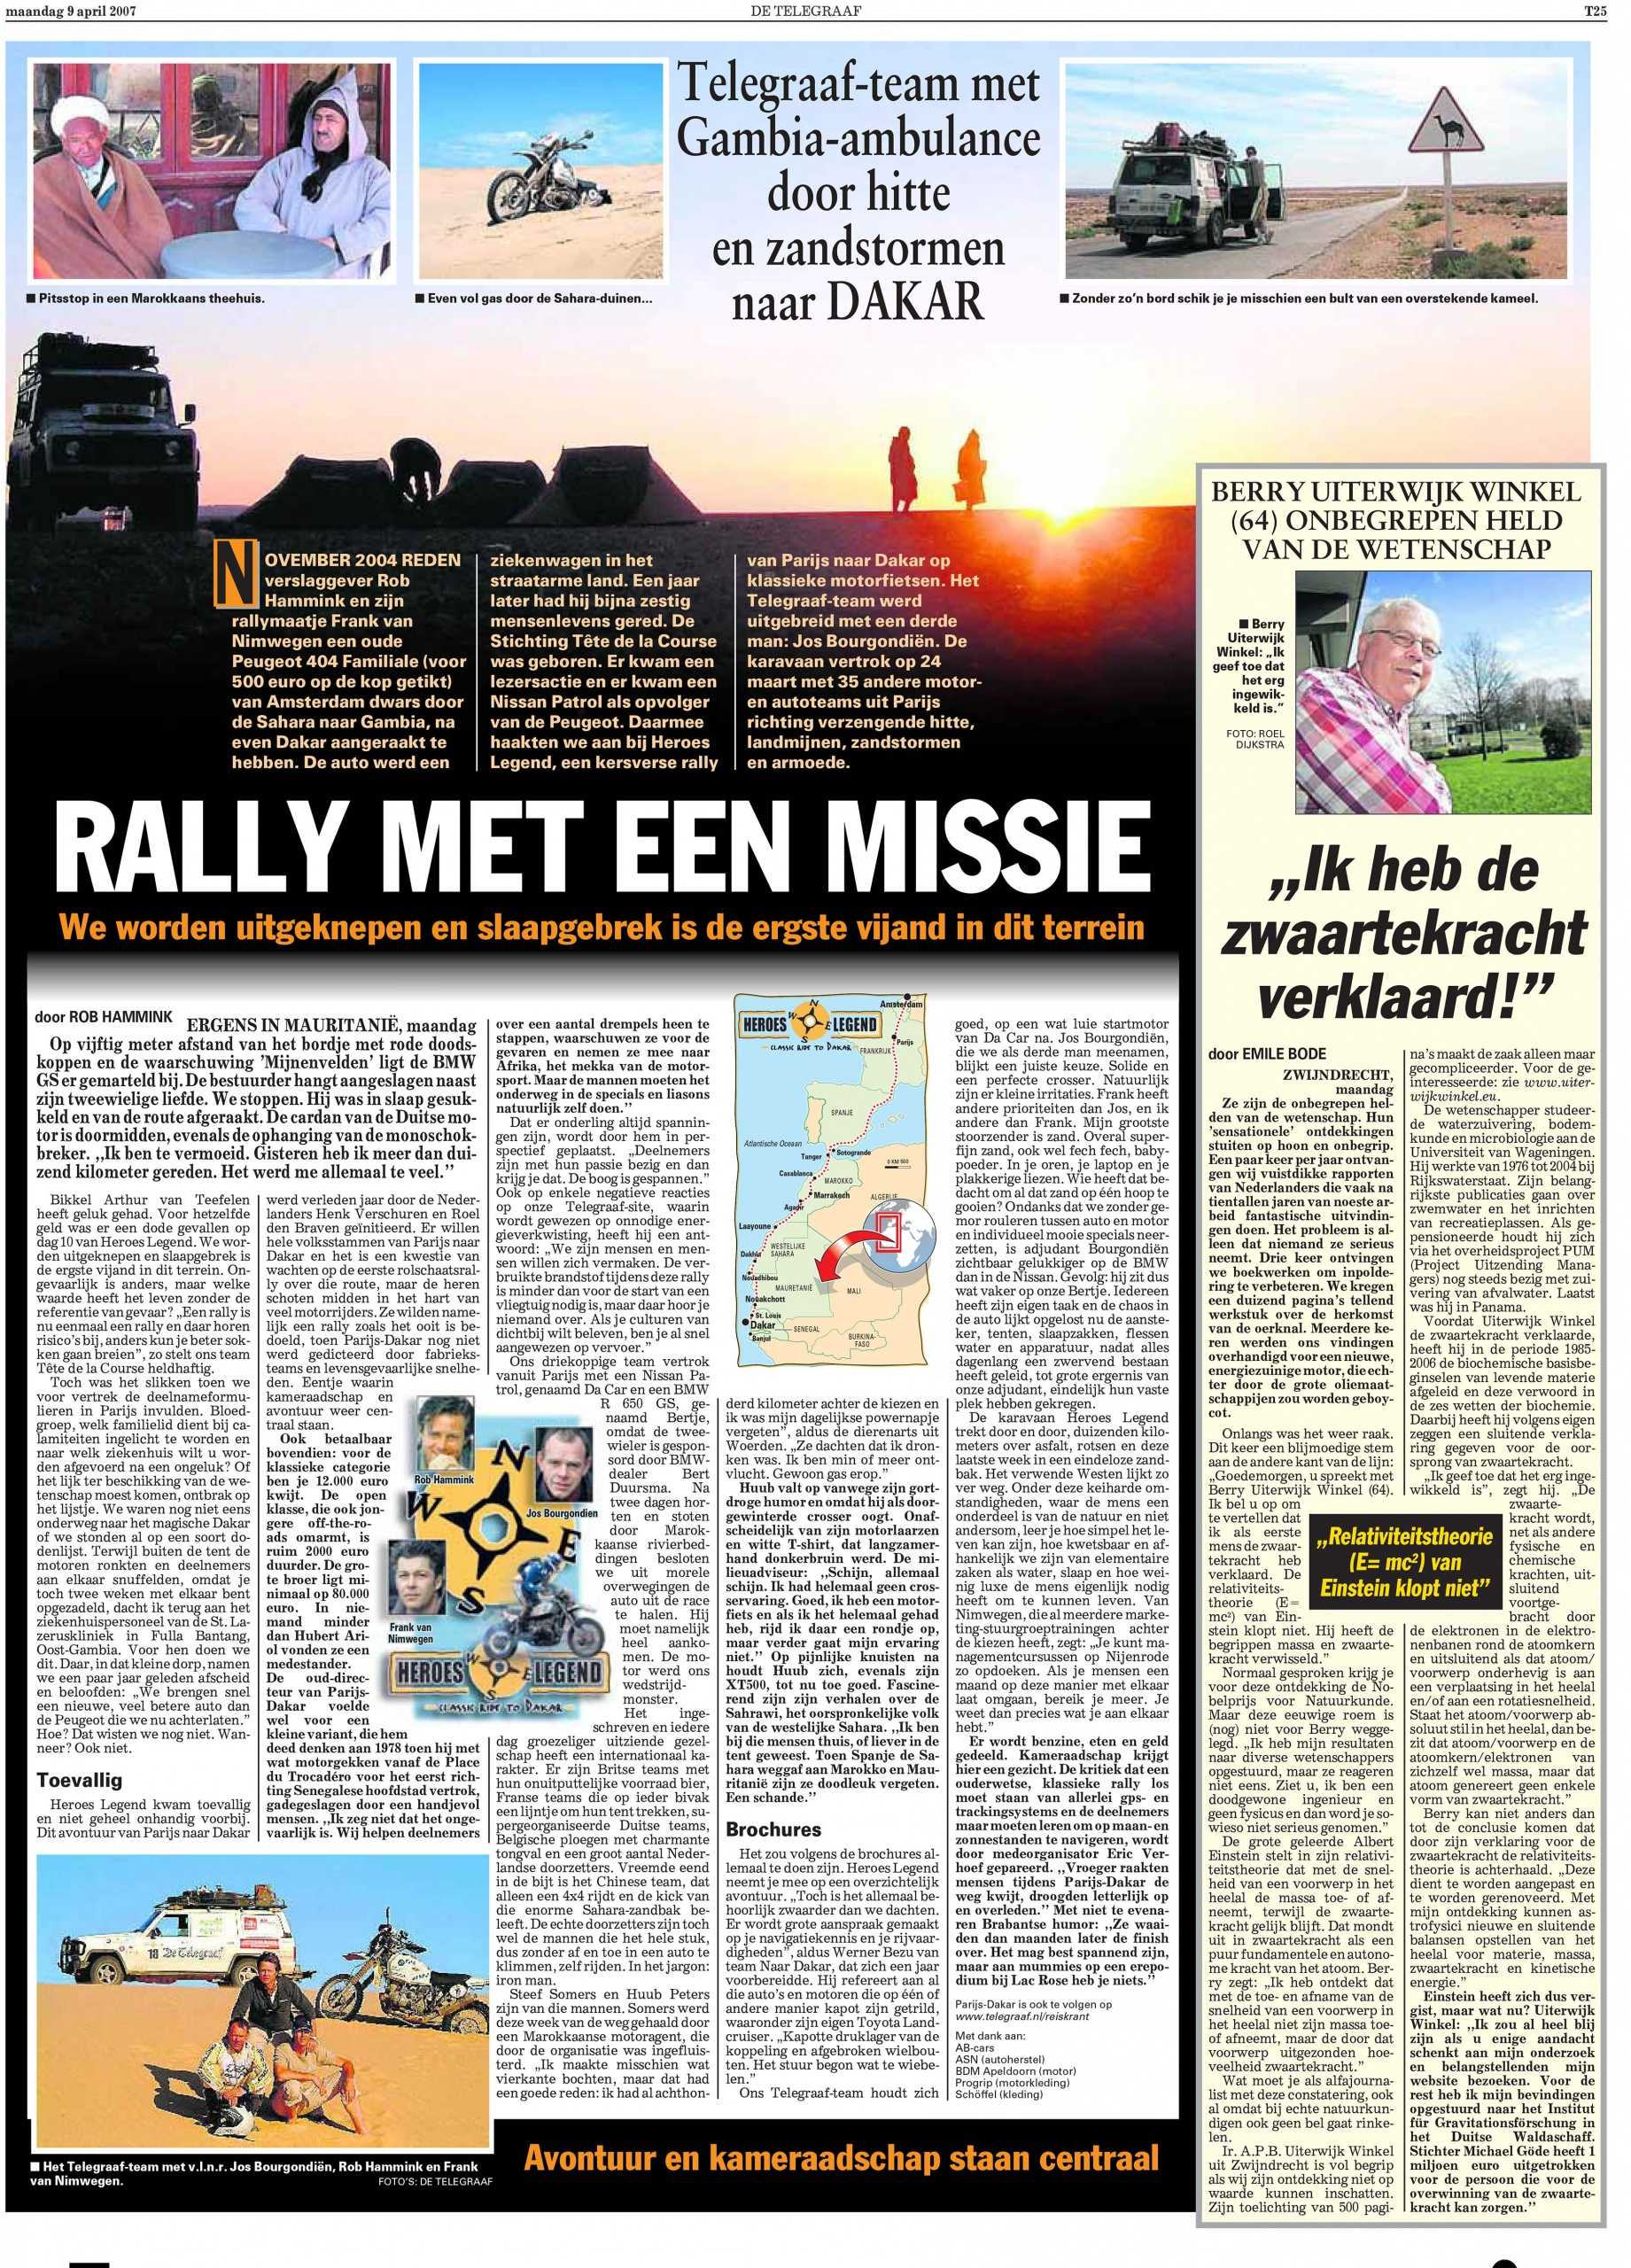 Africa-rally-with-a-mission